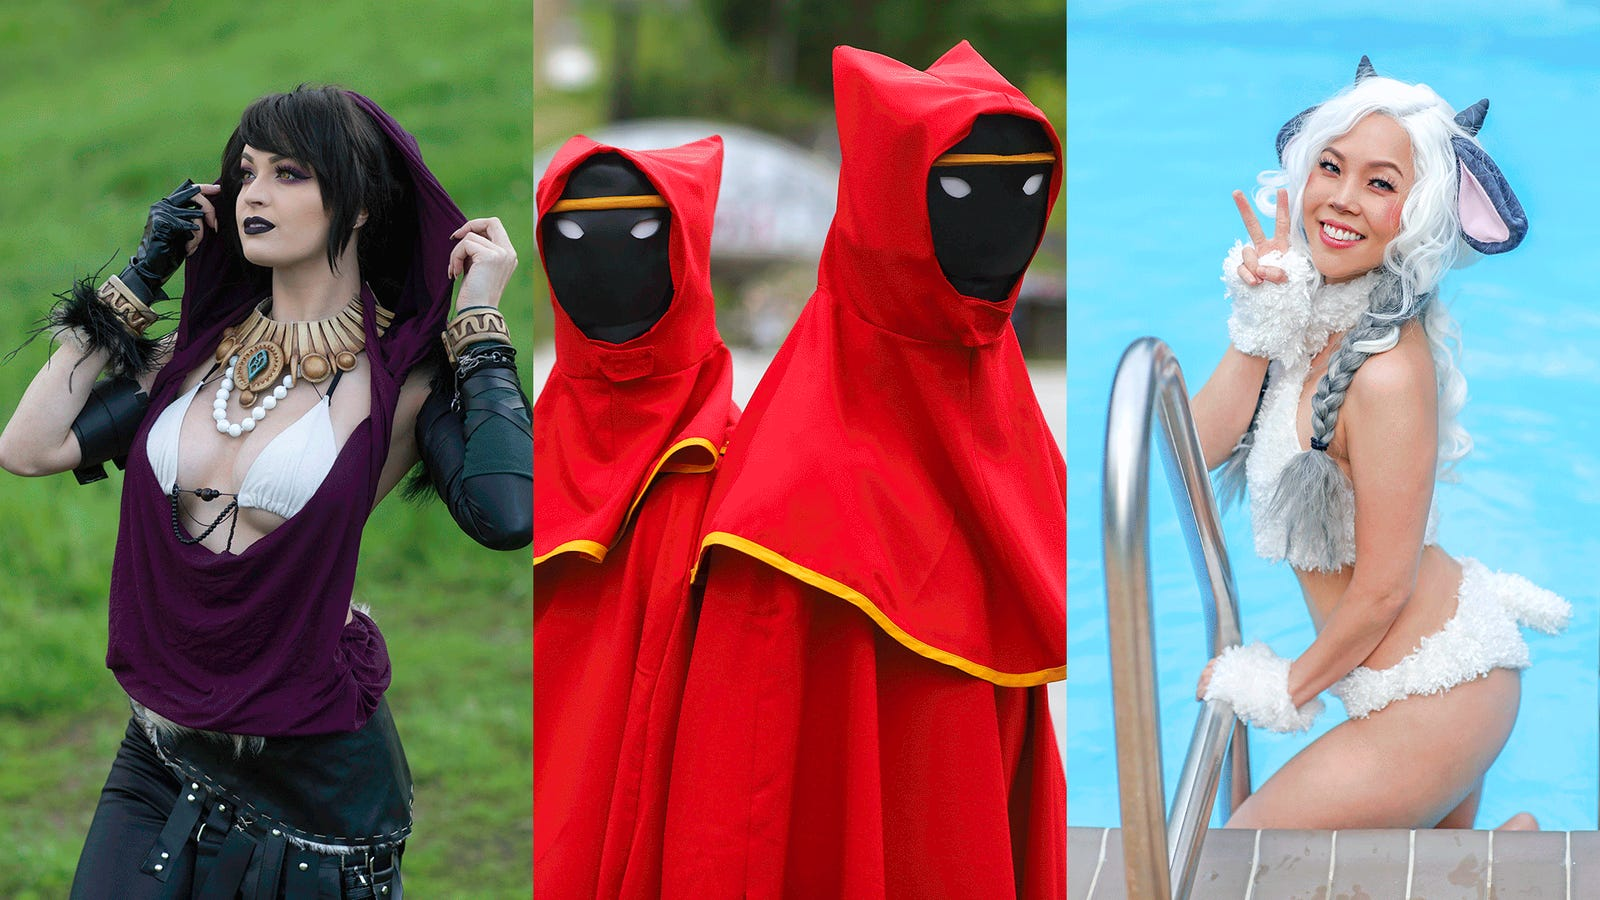 Our Favorite Photos From YetiCon, Canada's Mountain Cosplay Party